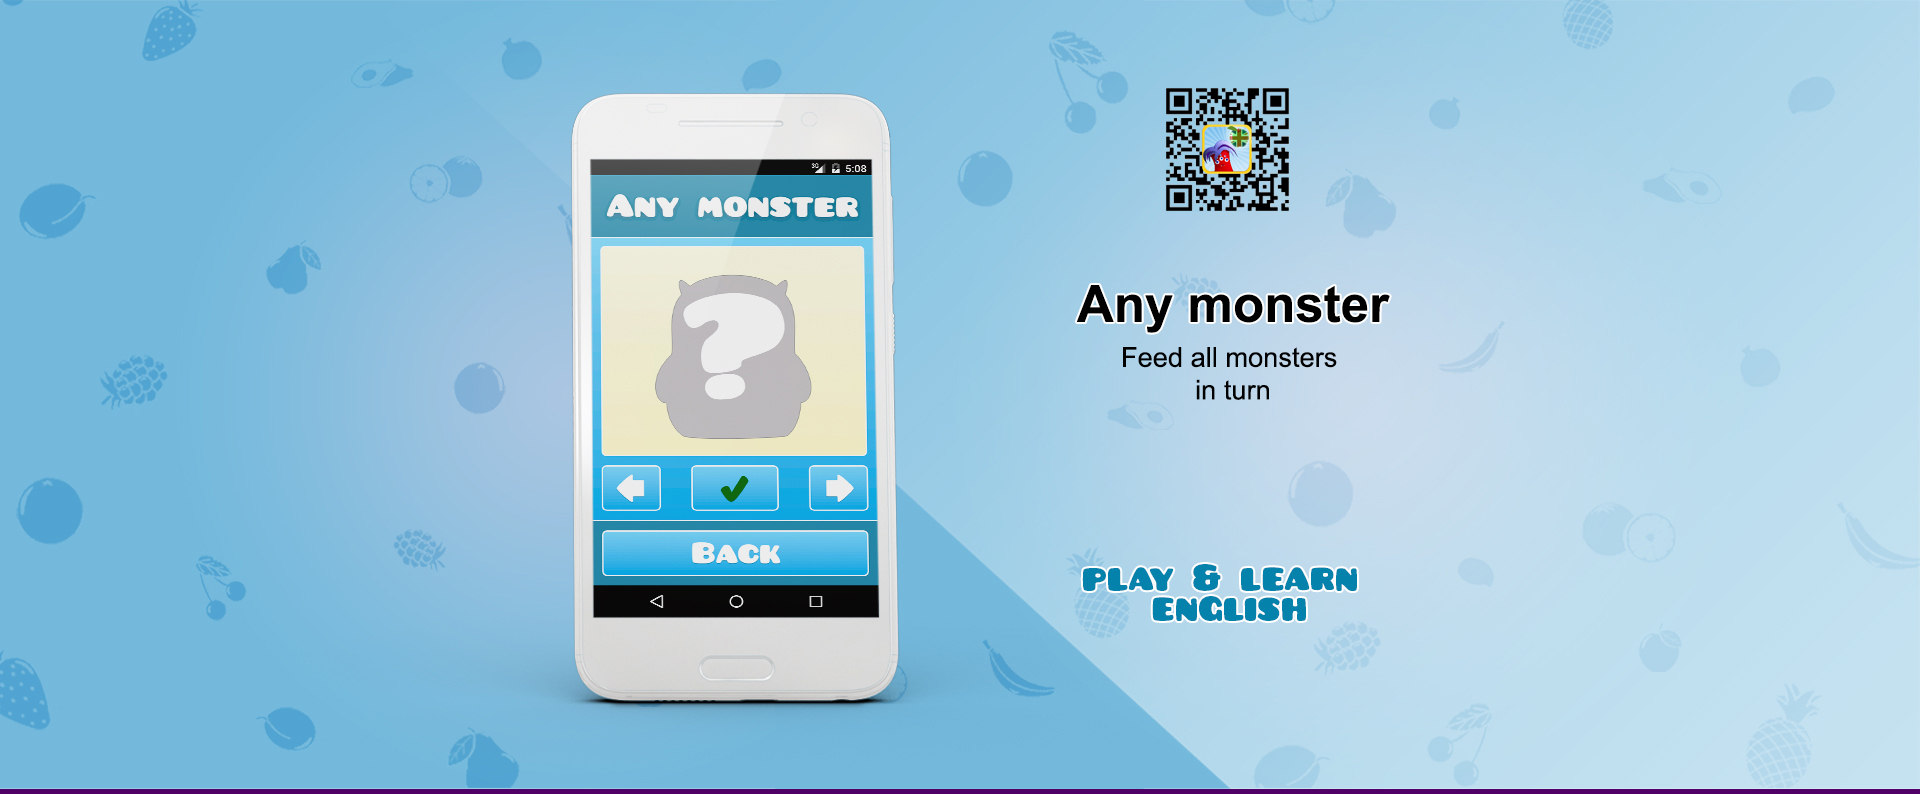 Any monster. Feed all monsters in turn